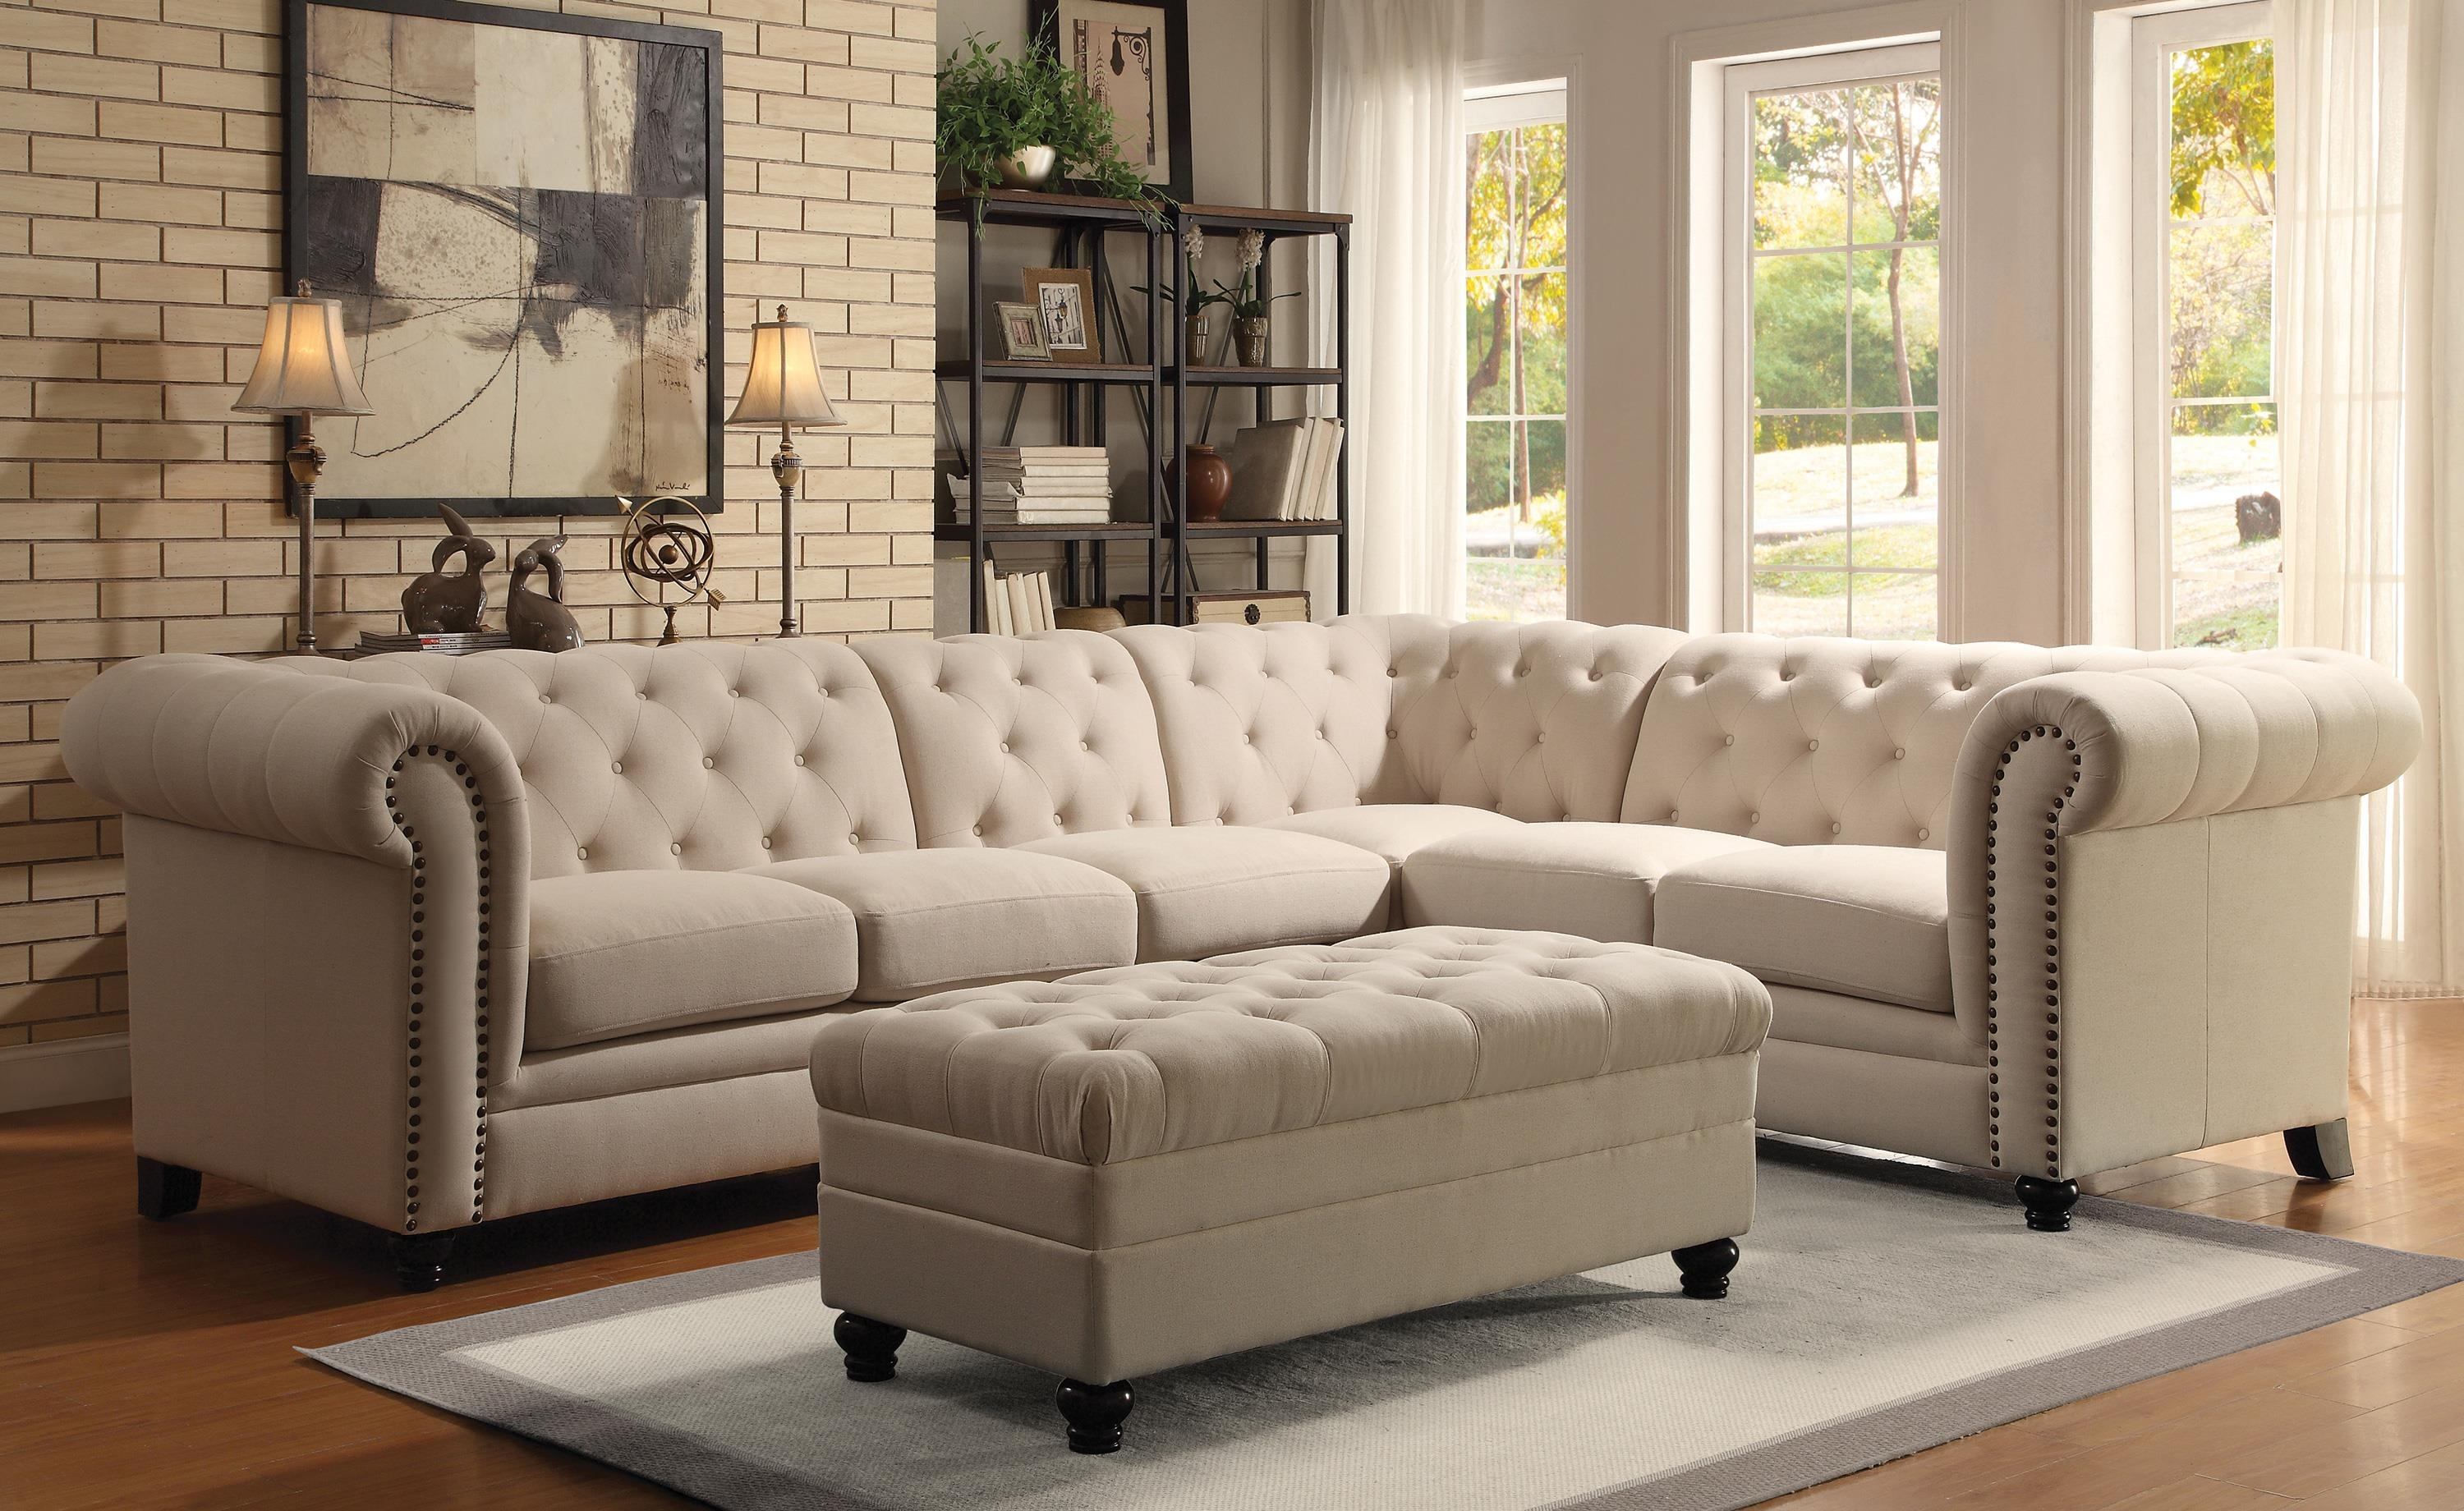 Button Tufted Sectional Sofa With Armless Chaircoaster   Wolf Intended For Lancaster Pa Sectional Sofas (Image 3 of 10)